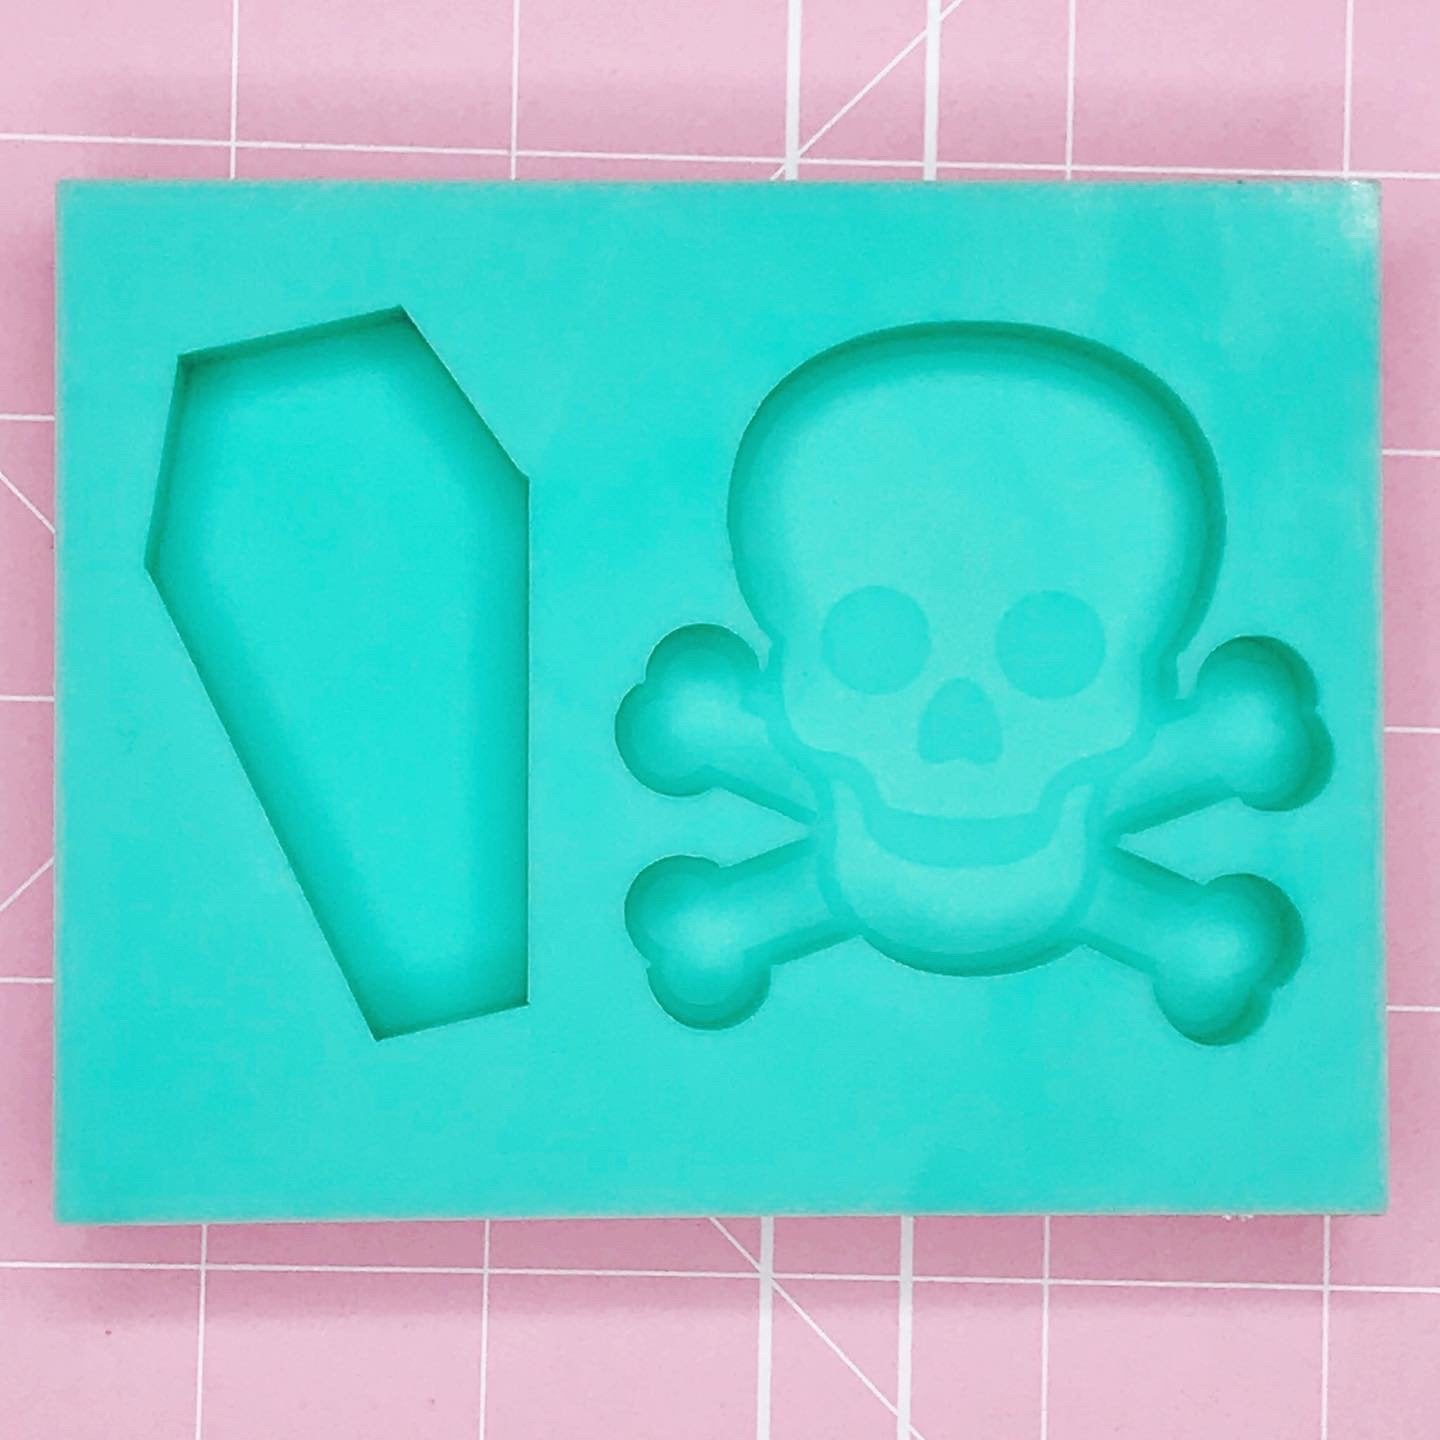 BF2020 -Palette Mold: Skull & Crossbones / Coffin Duo [Etched / Solid]